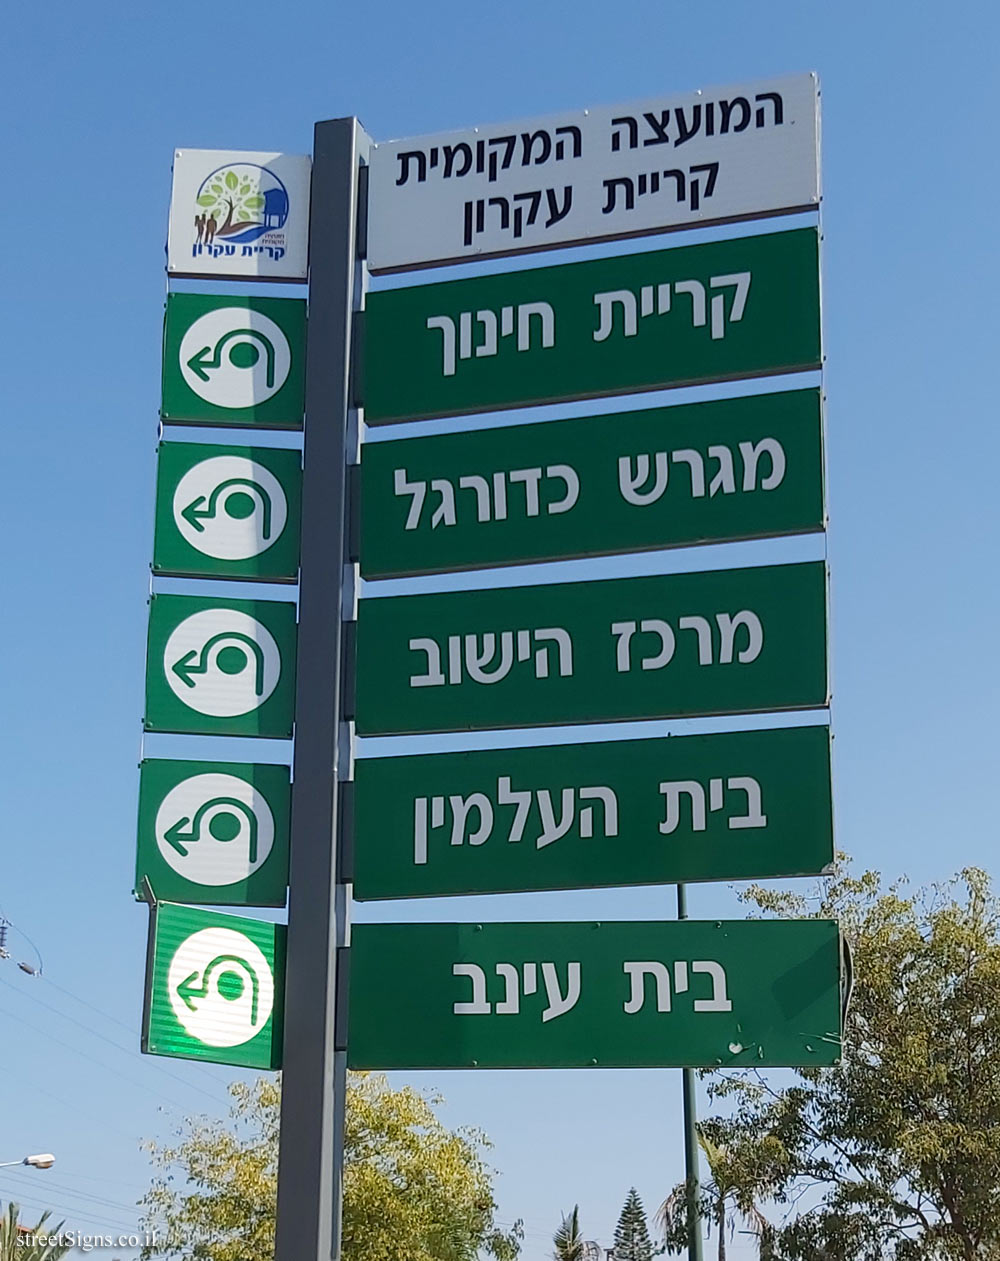 Kiryat Ekron - A direction sign pointing to places in the locality